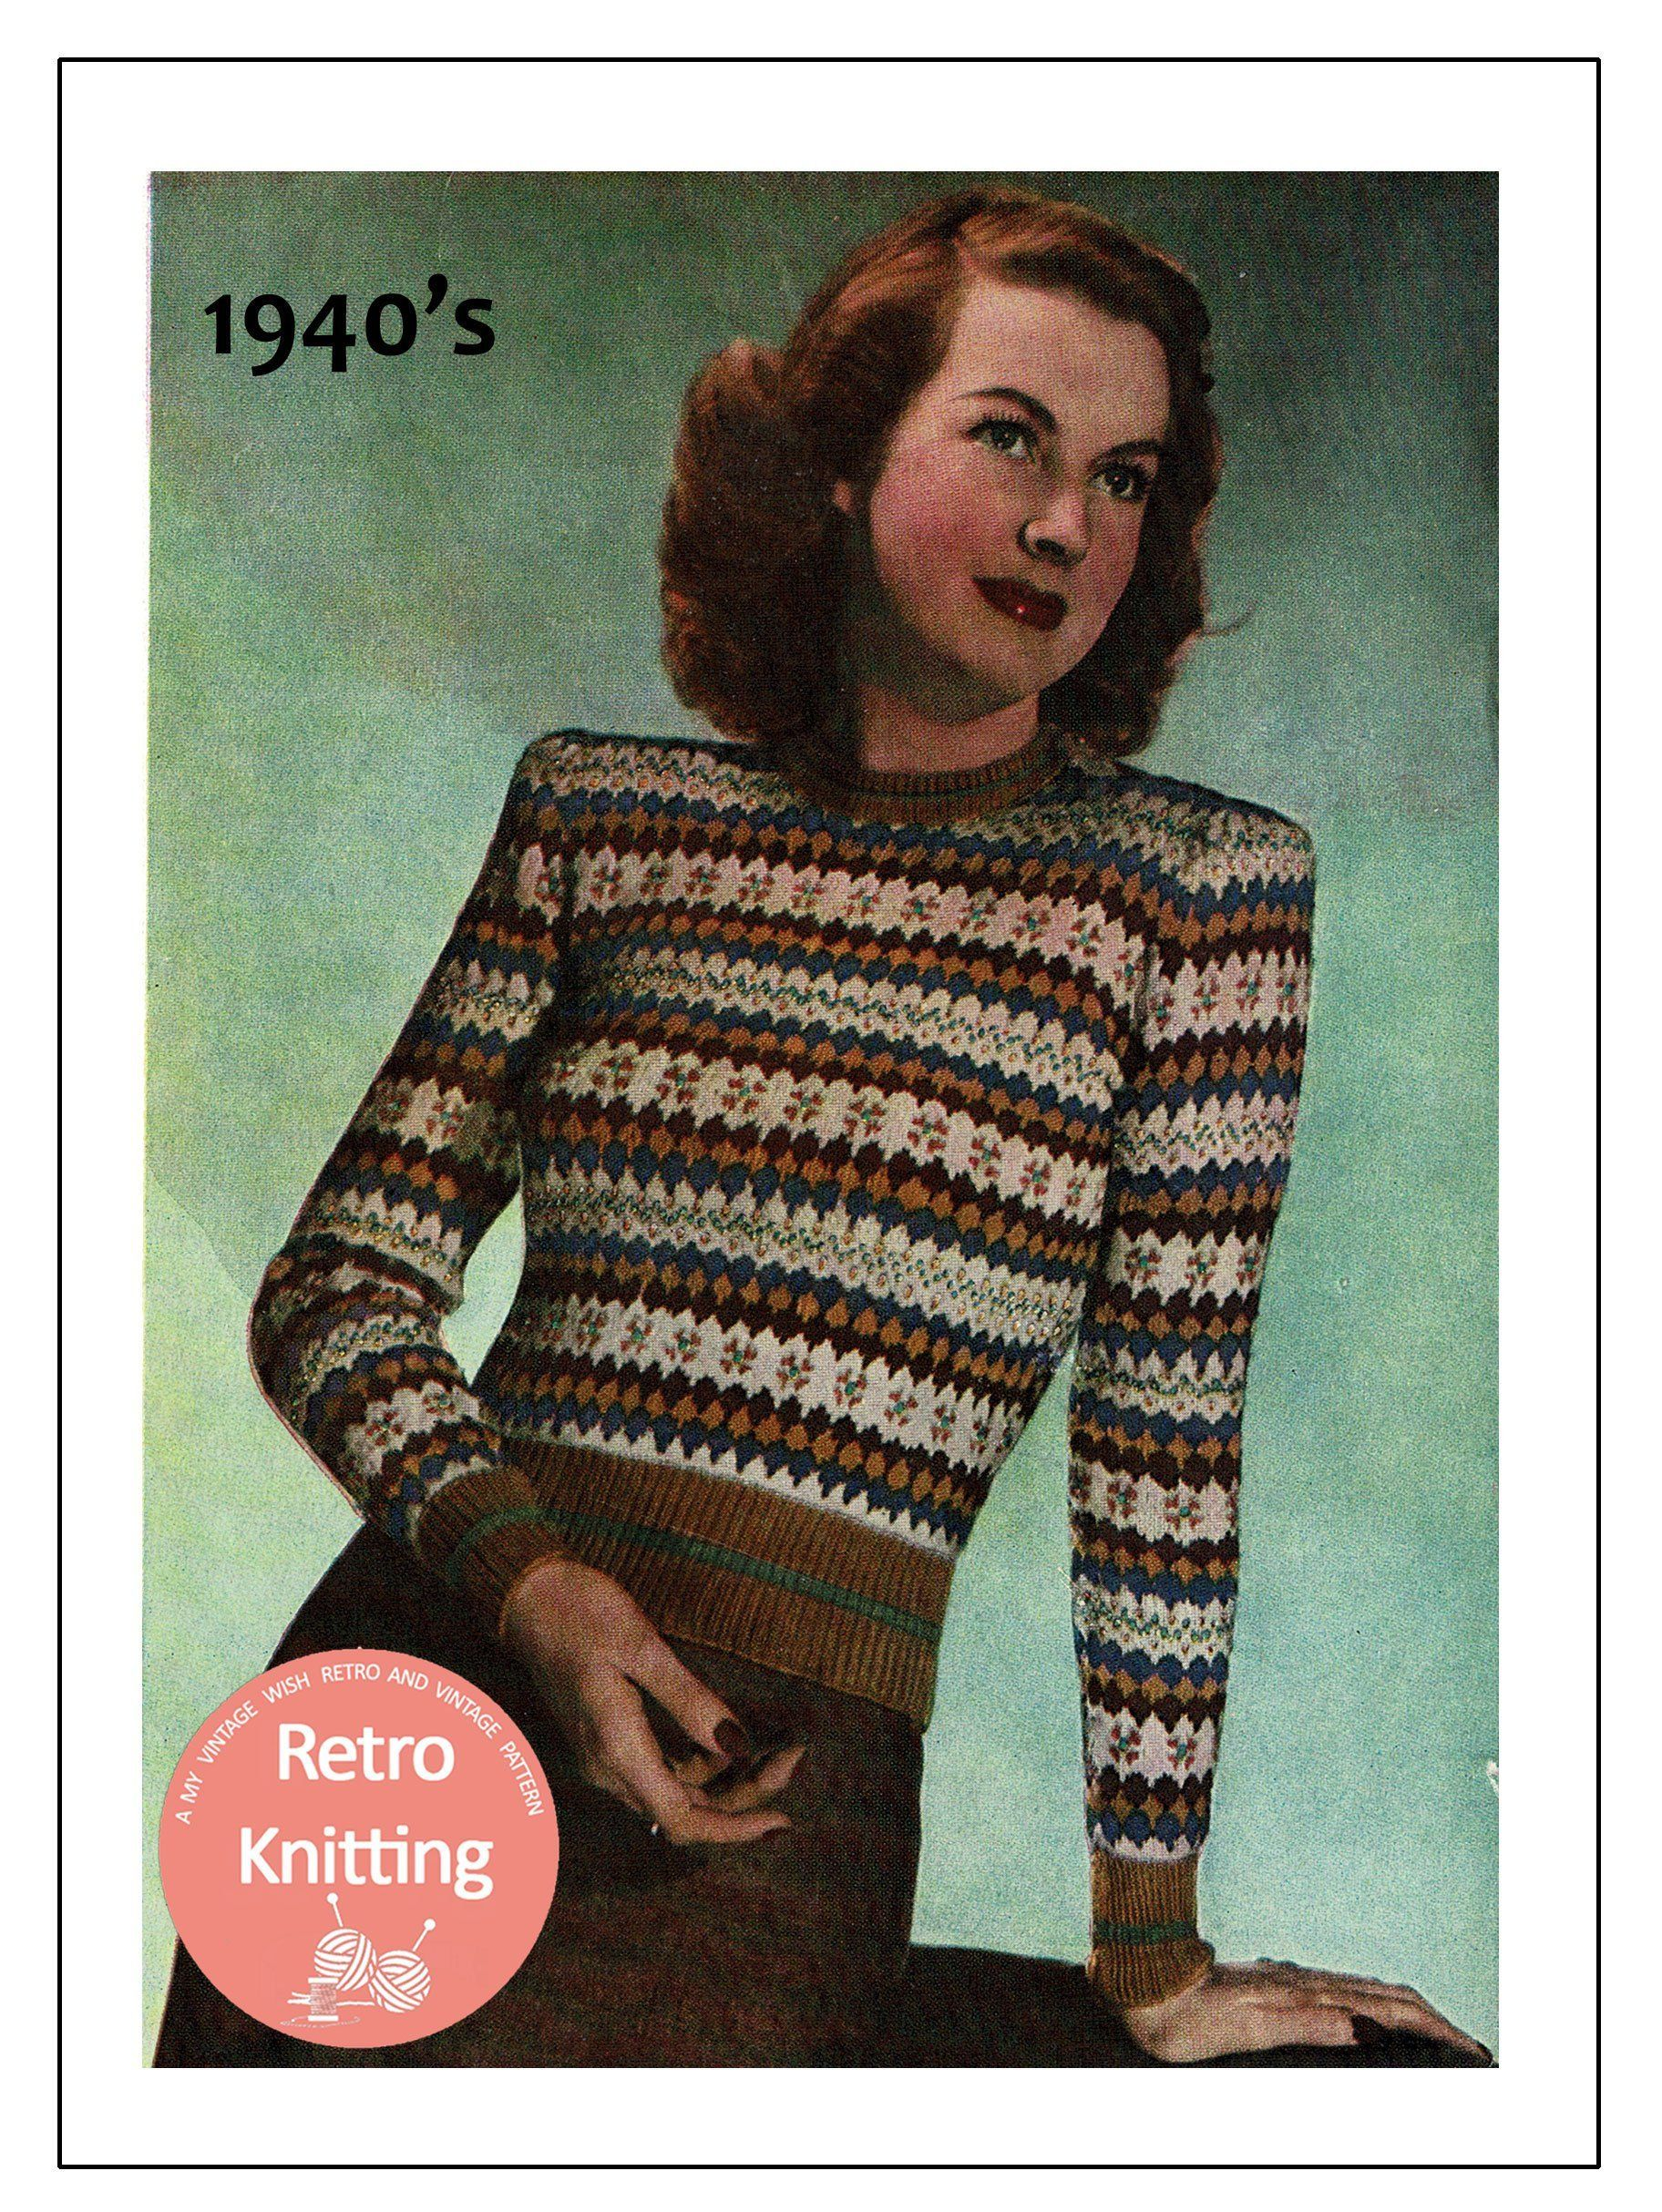 Copy from vintage booklet. Lady/'s pullover crochet pattern